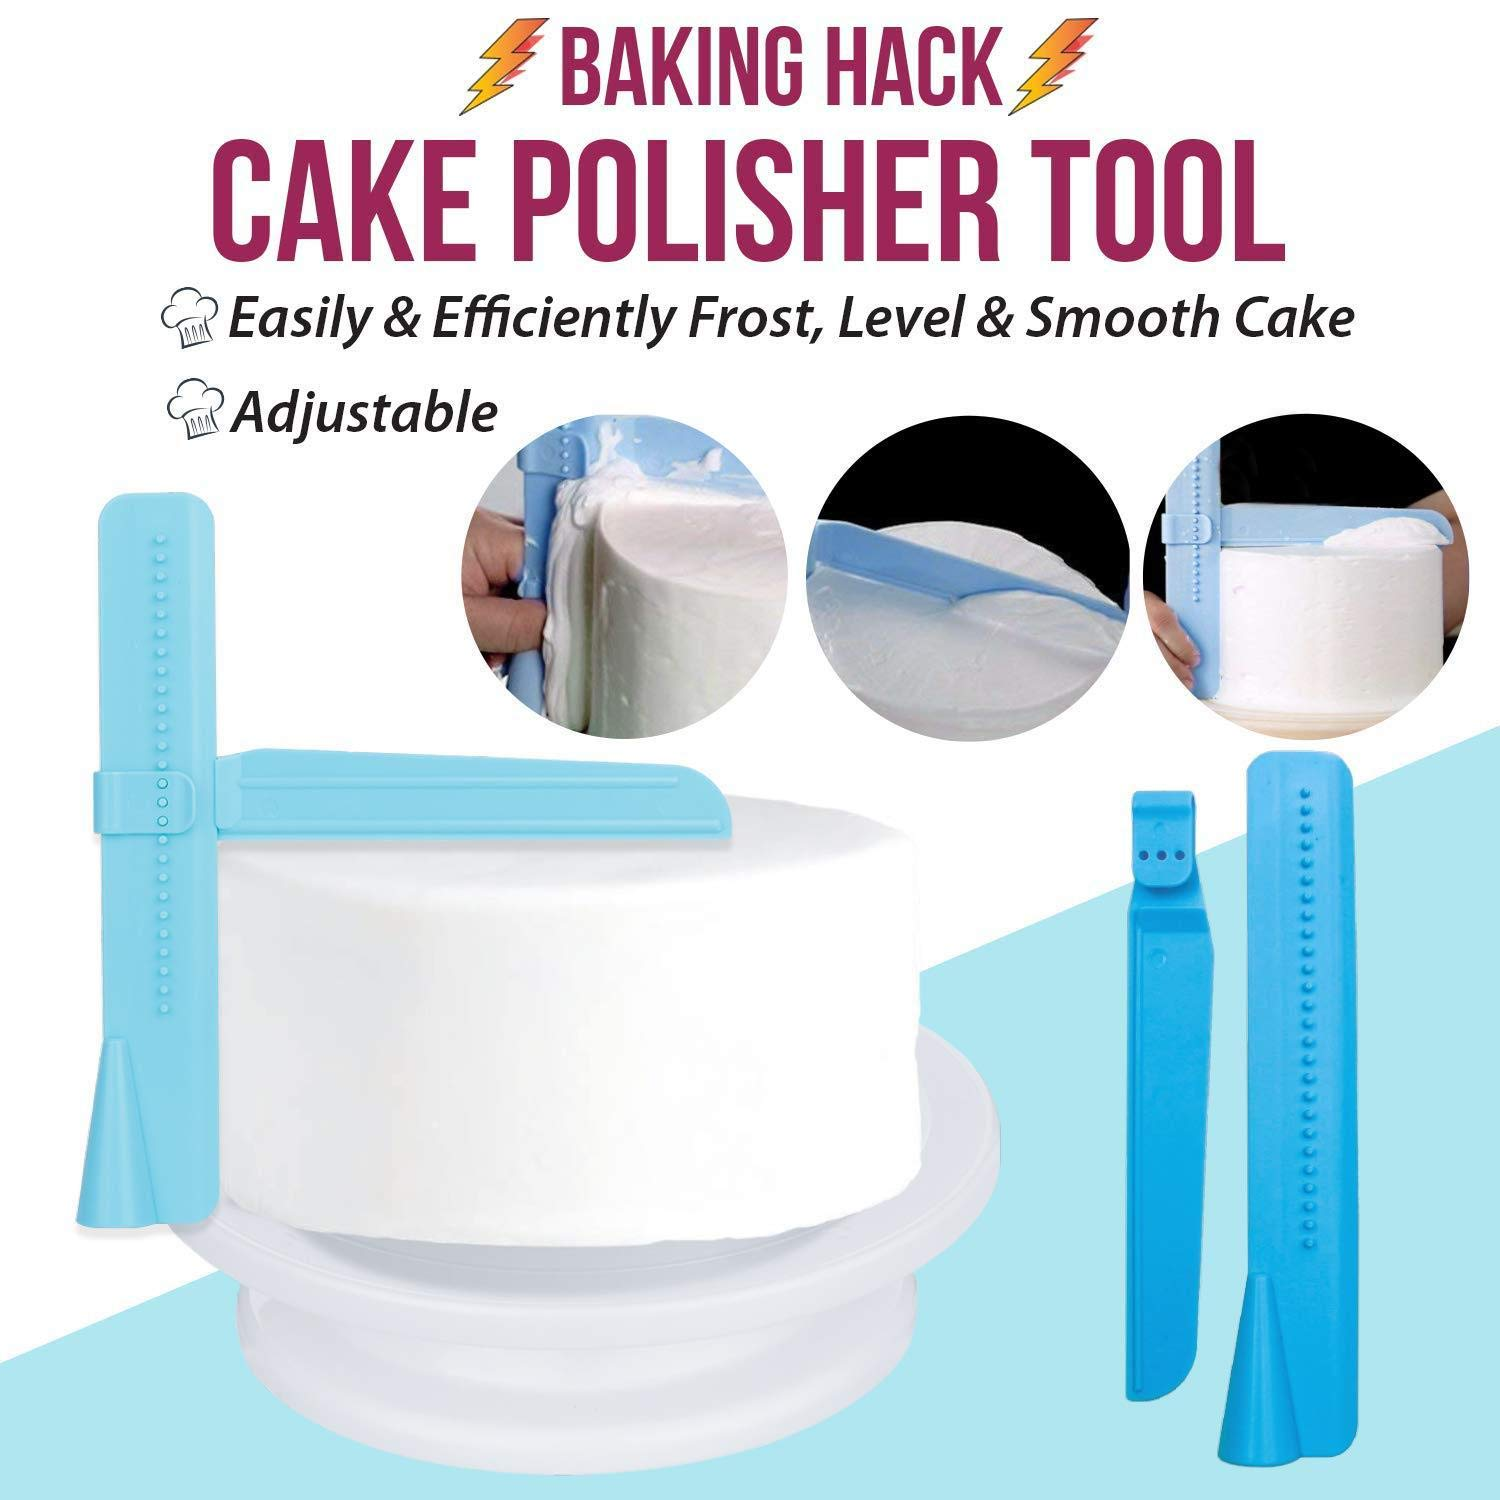 JHKJ 164 -Piece Cake Turntable Set Baking Tool DIY Tool Cake Decorating Kit Supplies by JHKJ (Image #3)